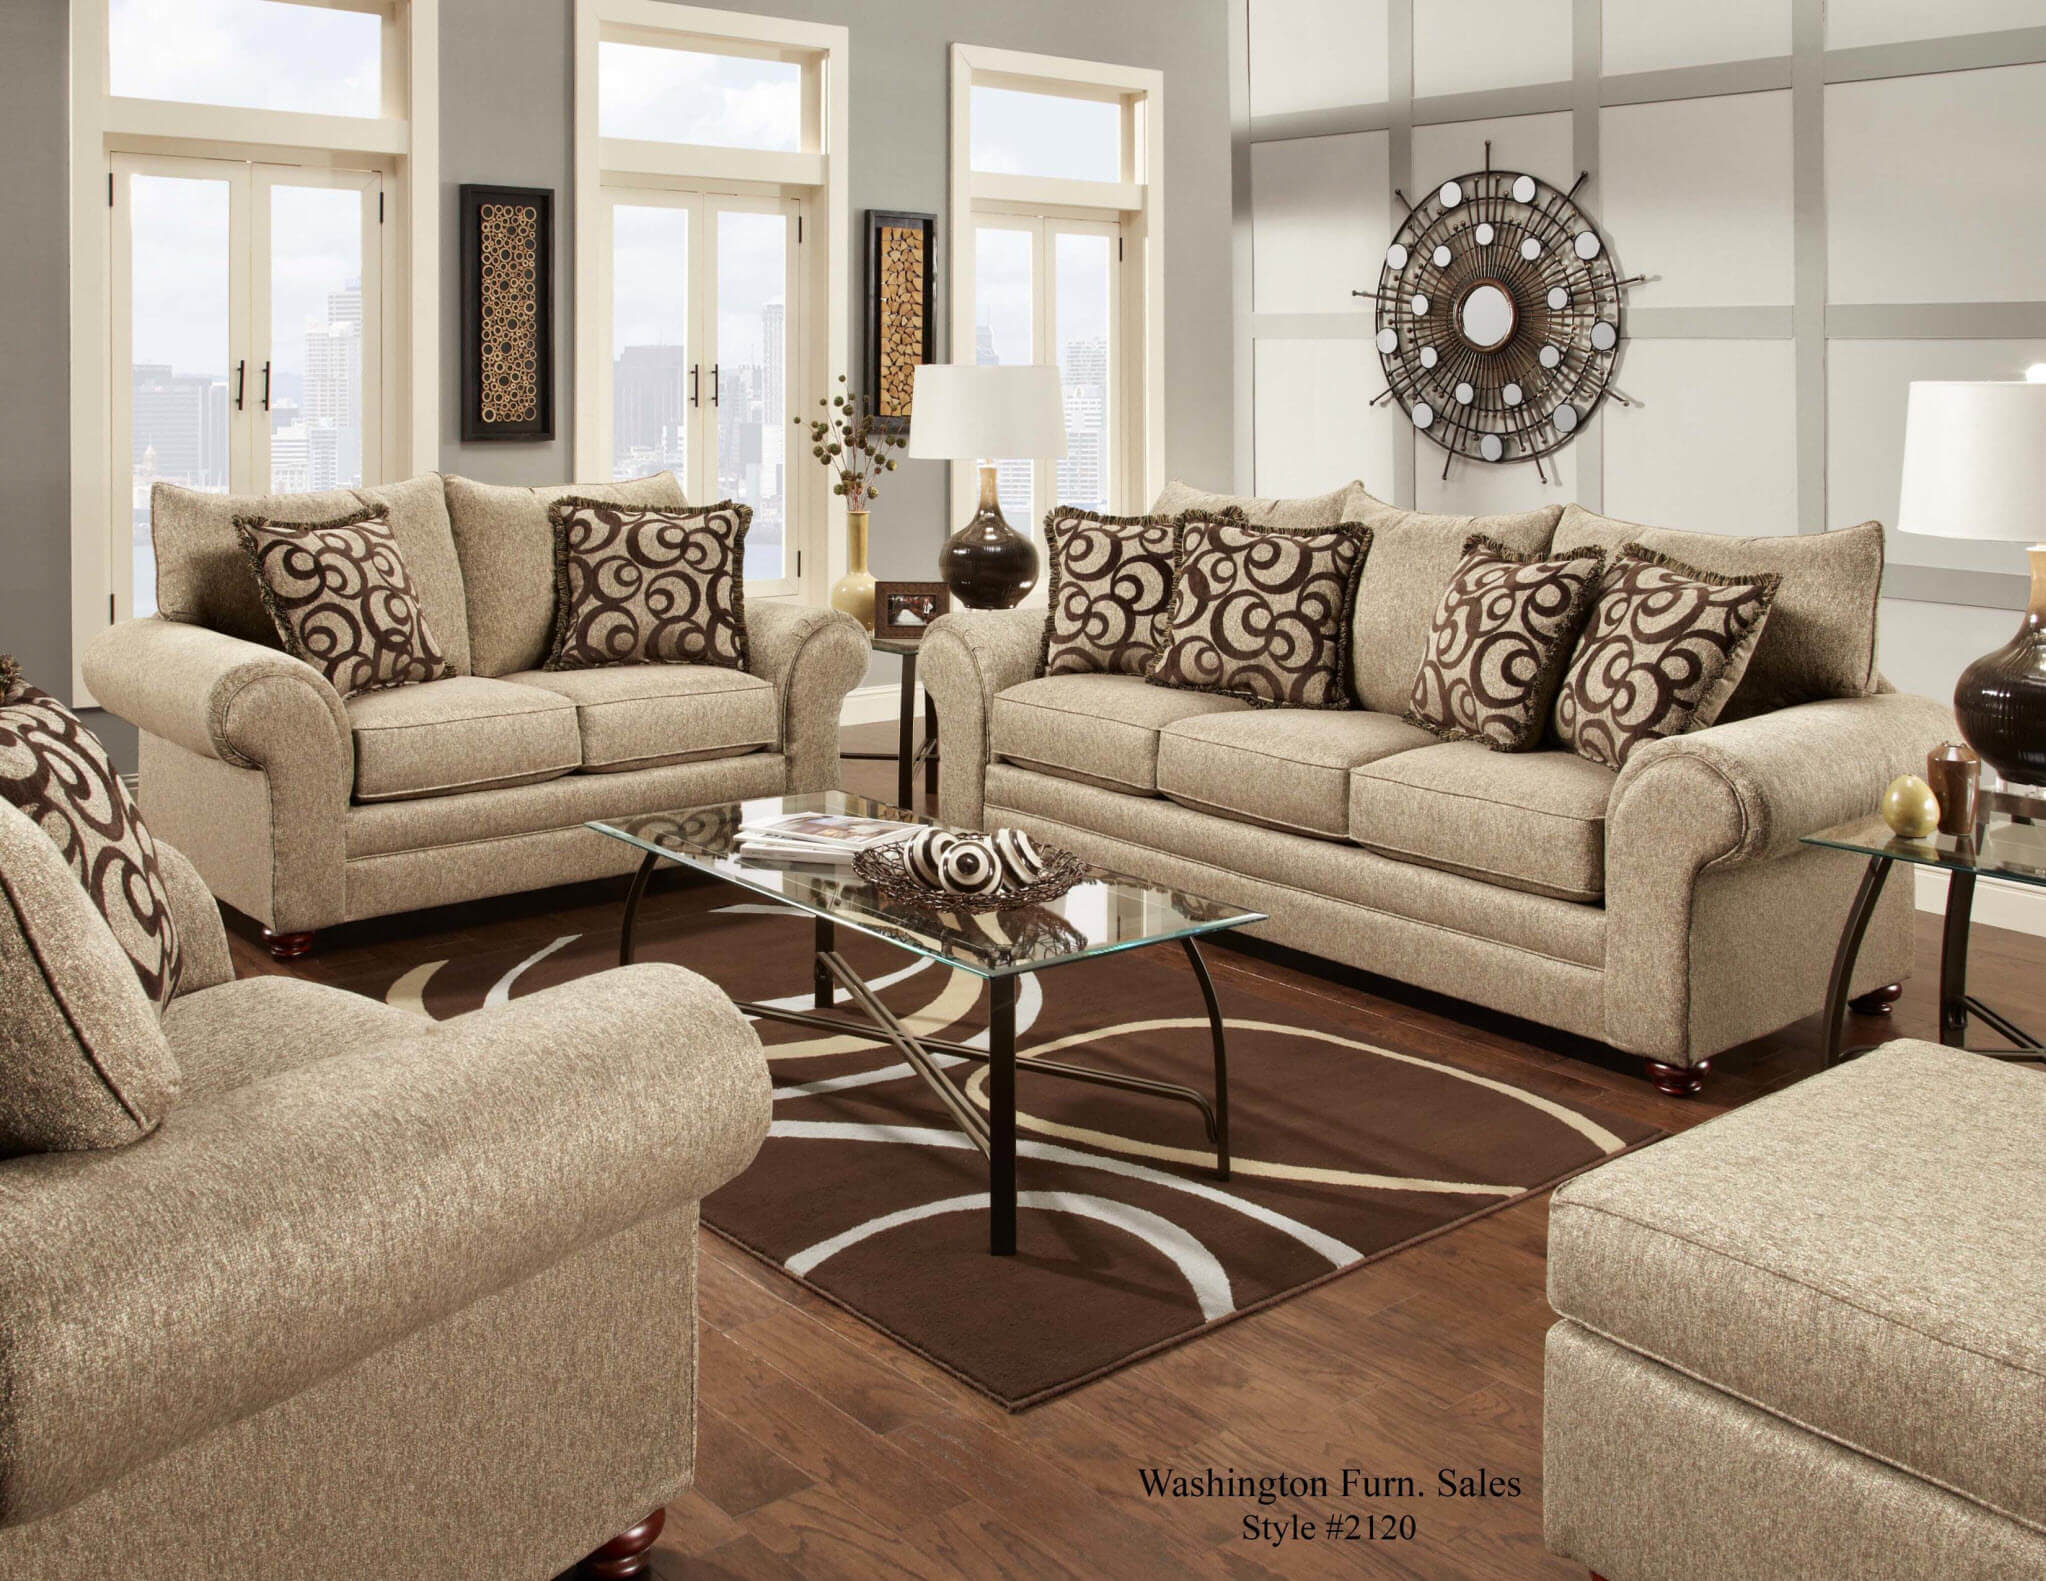 Living Room Sofas Sets 2120 Washington Mix Cafe Sofa And Loveseat Discontinued